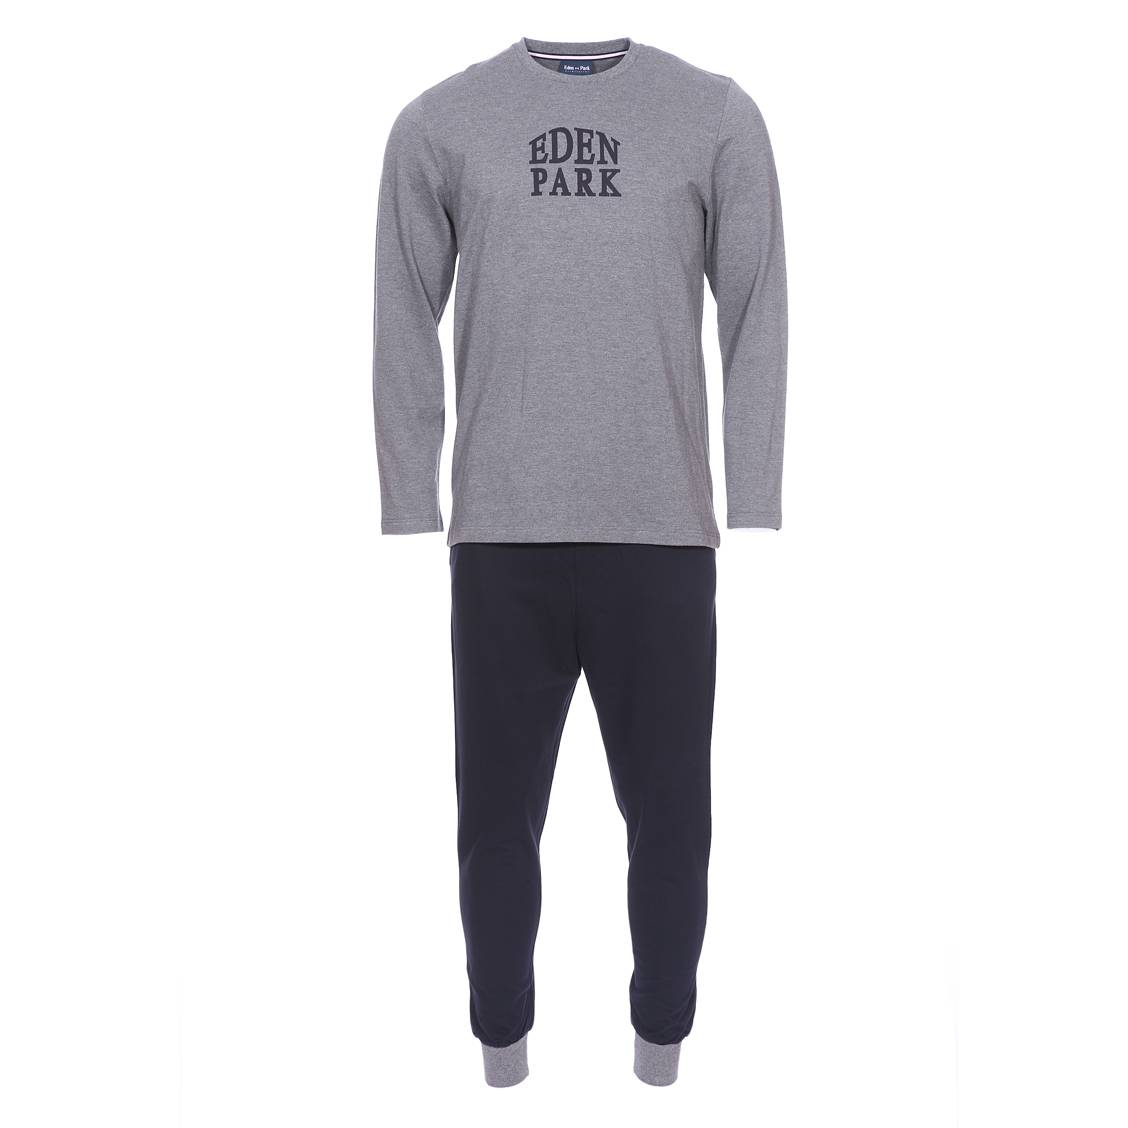 pyjama long eden park en coton tee shirt manches longues col rond gris et pantalon bleu marine. Black Bedroom Furniture Sets. Home Design Ideas